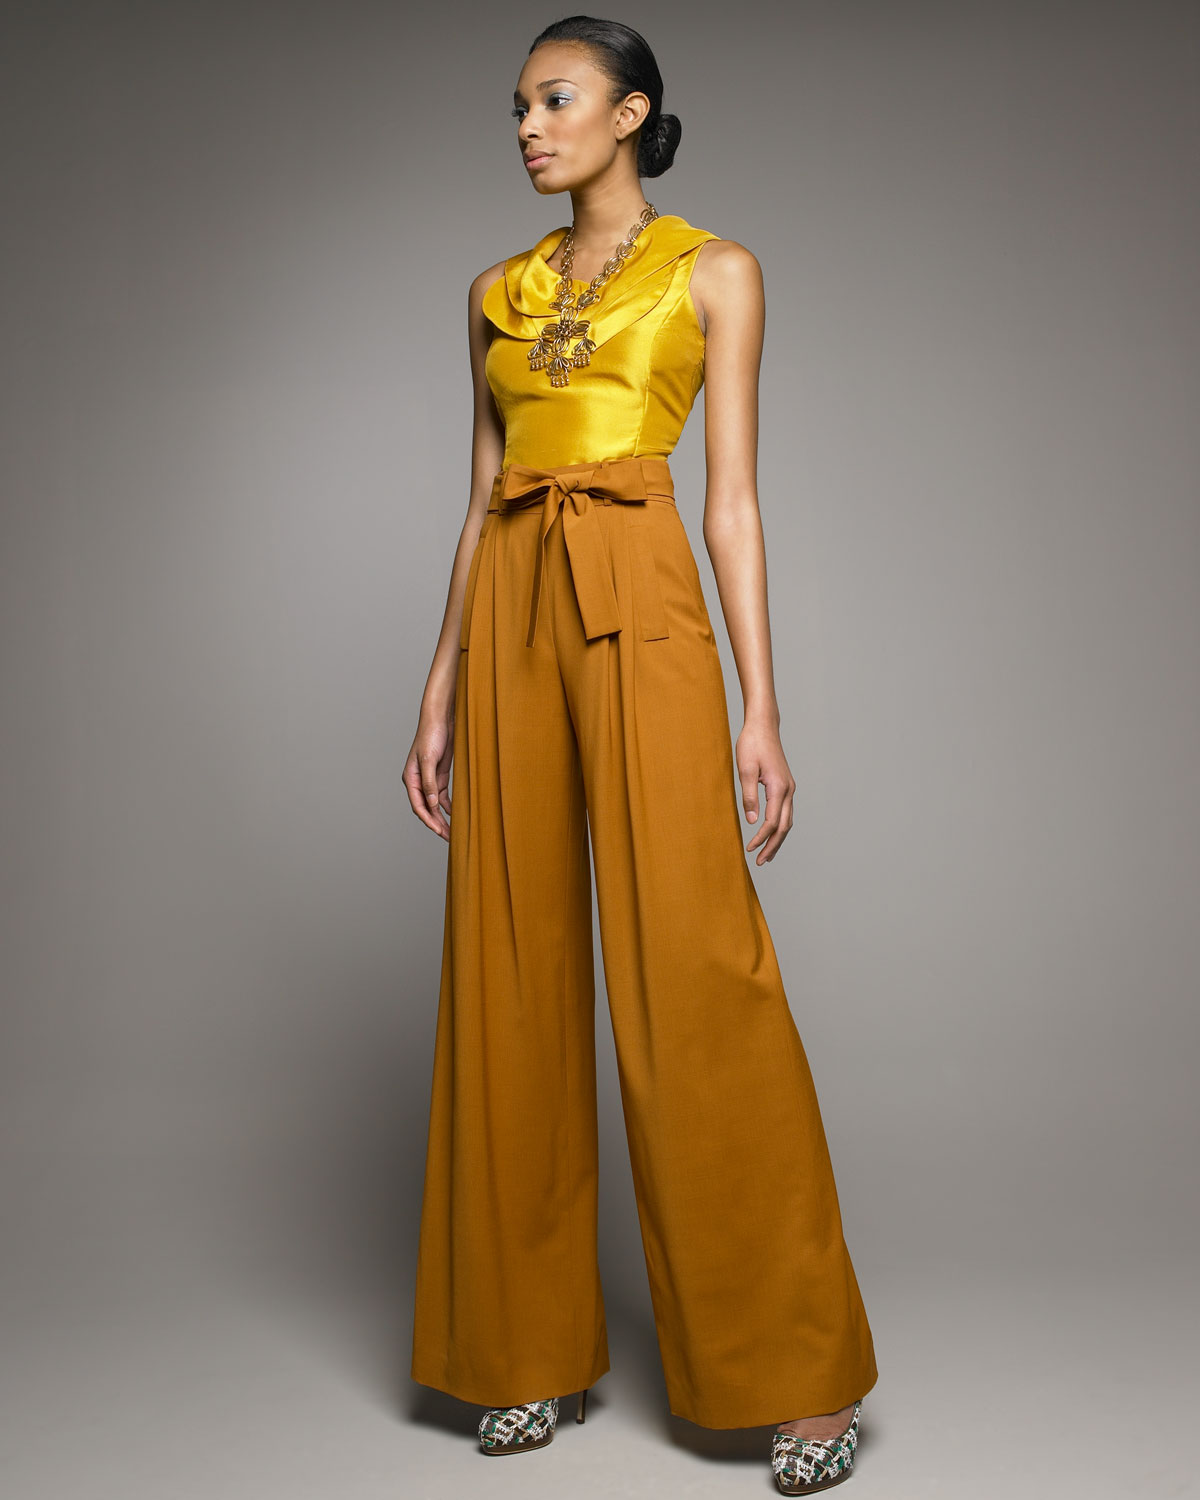 Wide Leg Pants For Women